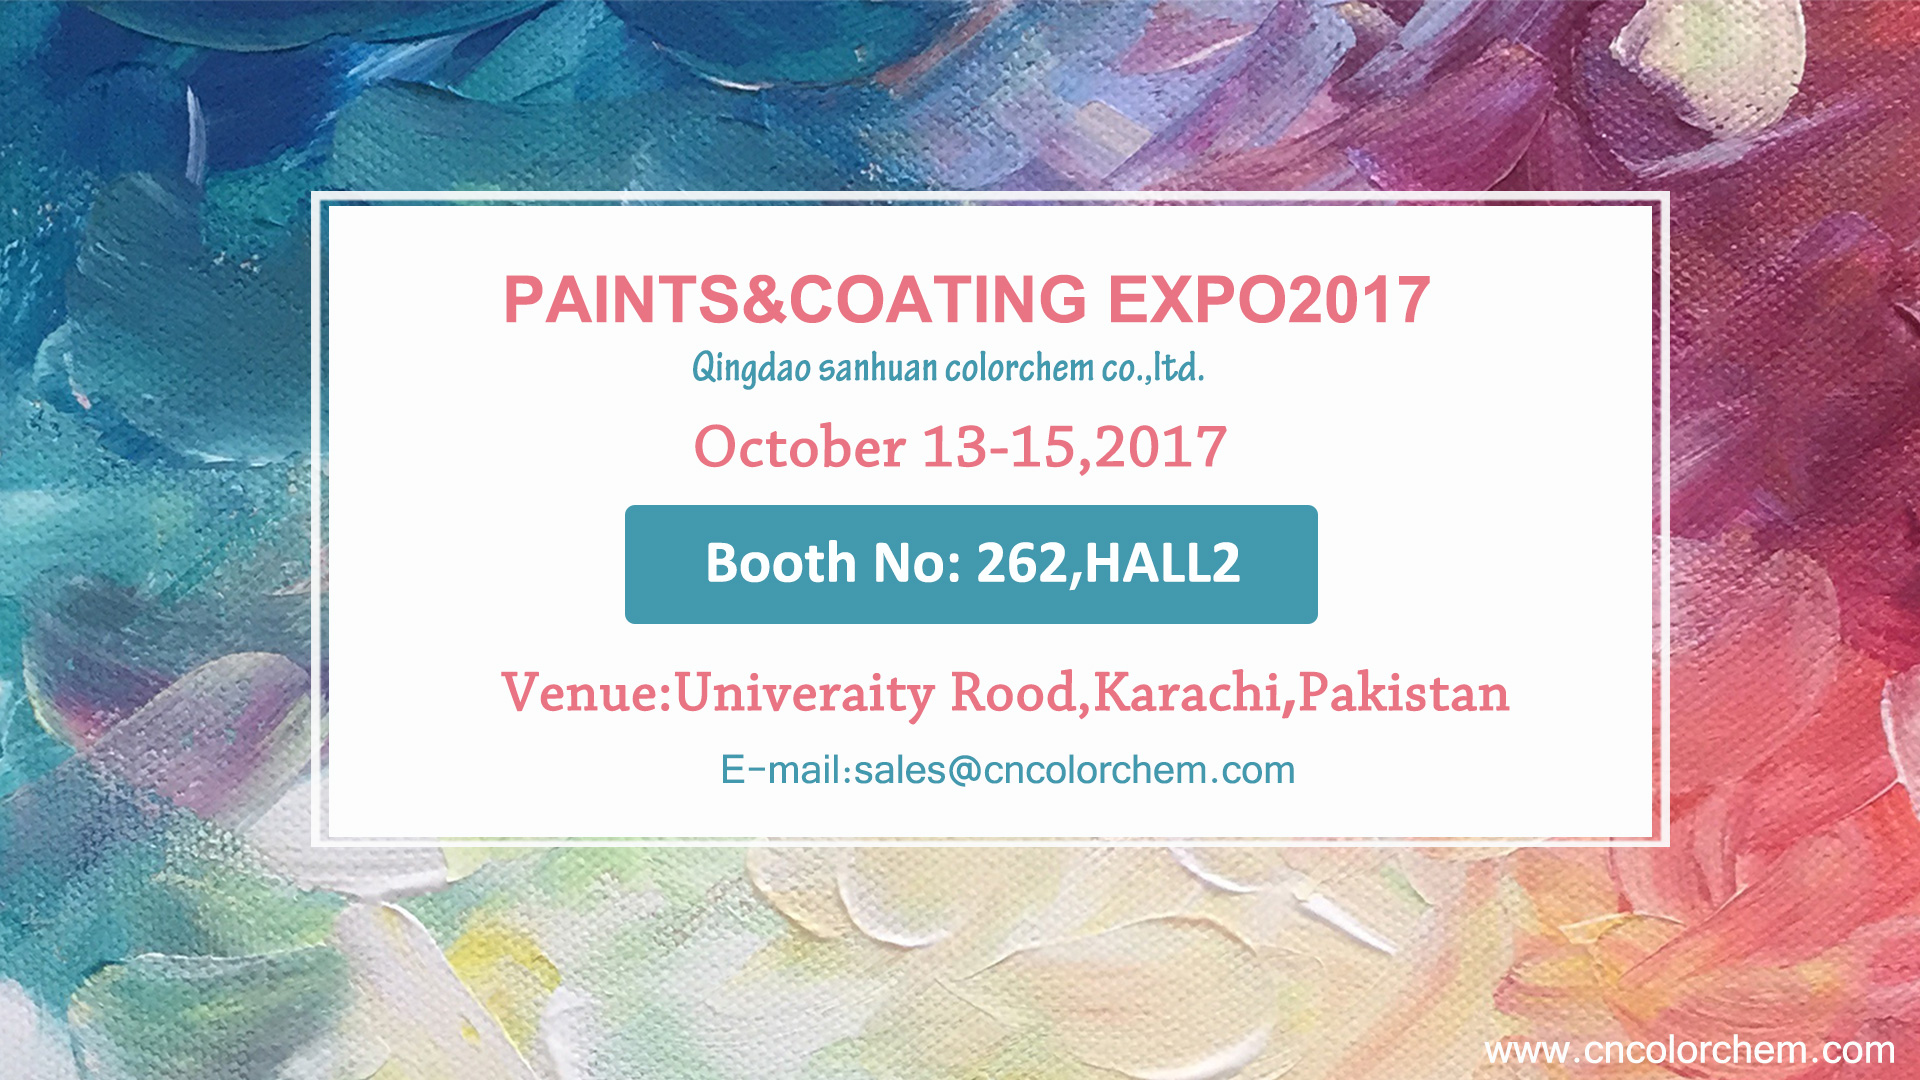 PAINTS&COATING EXPO 2017